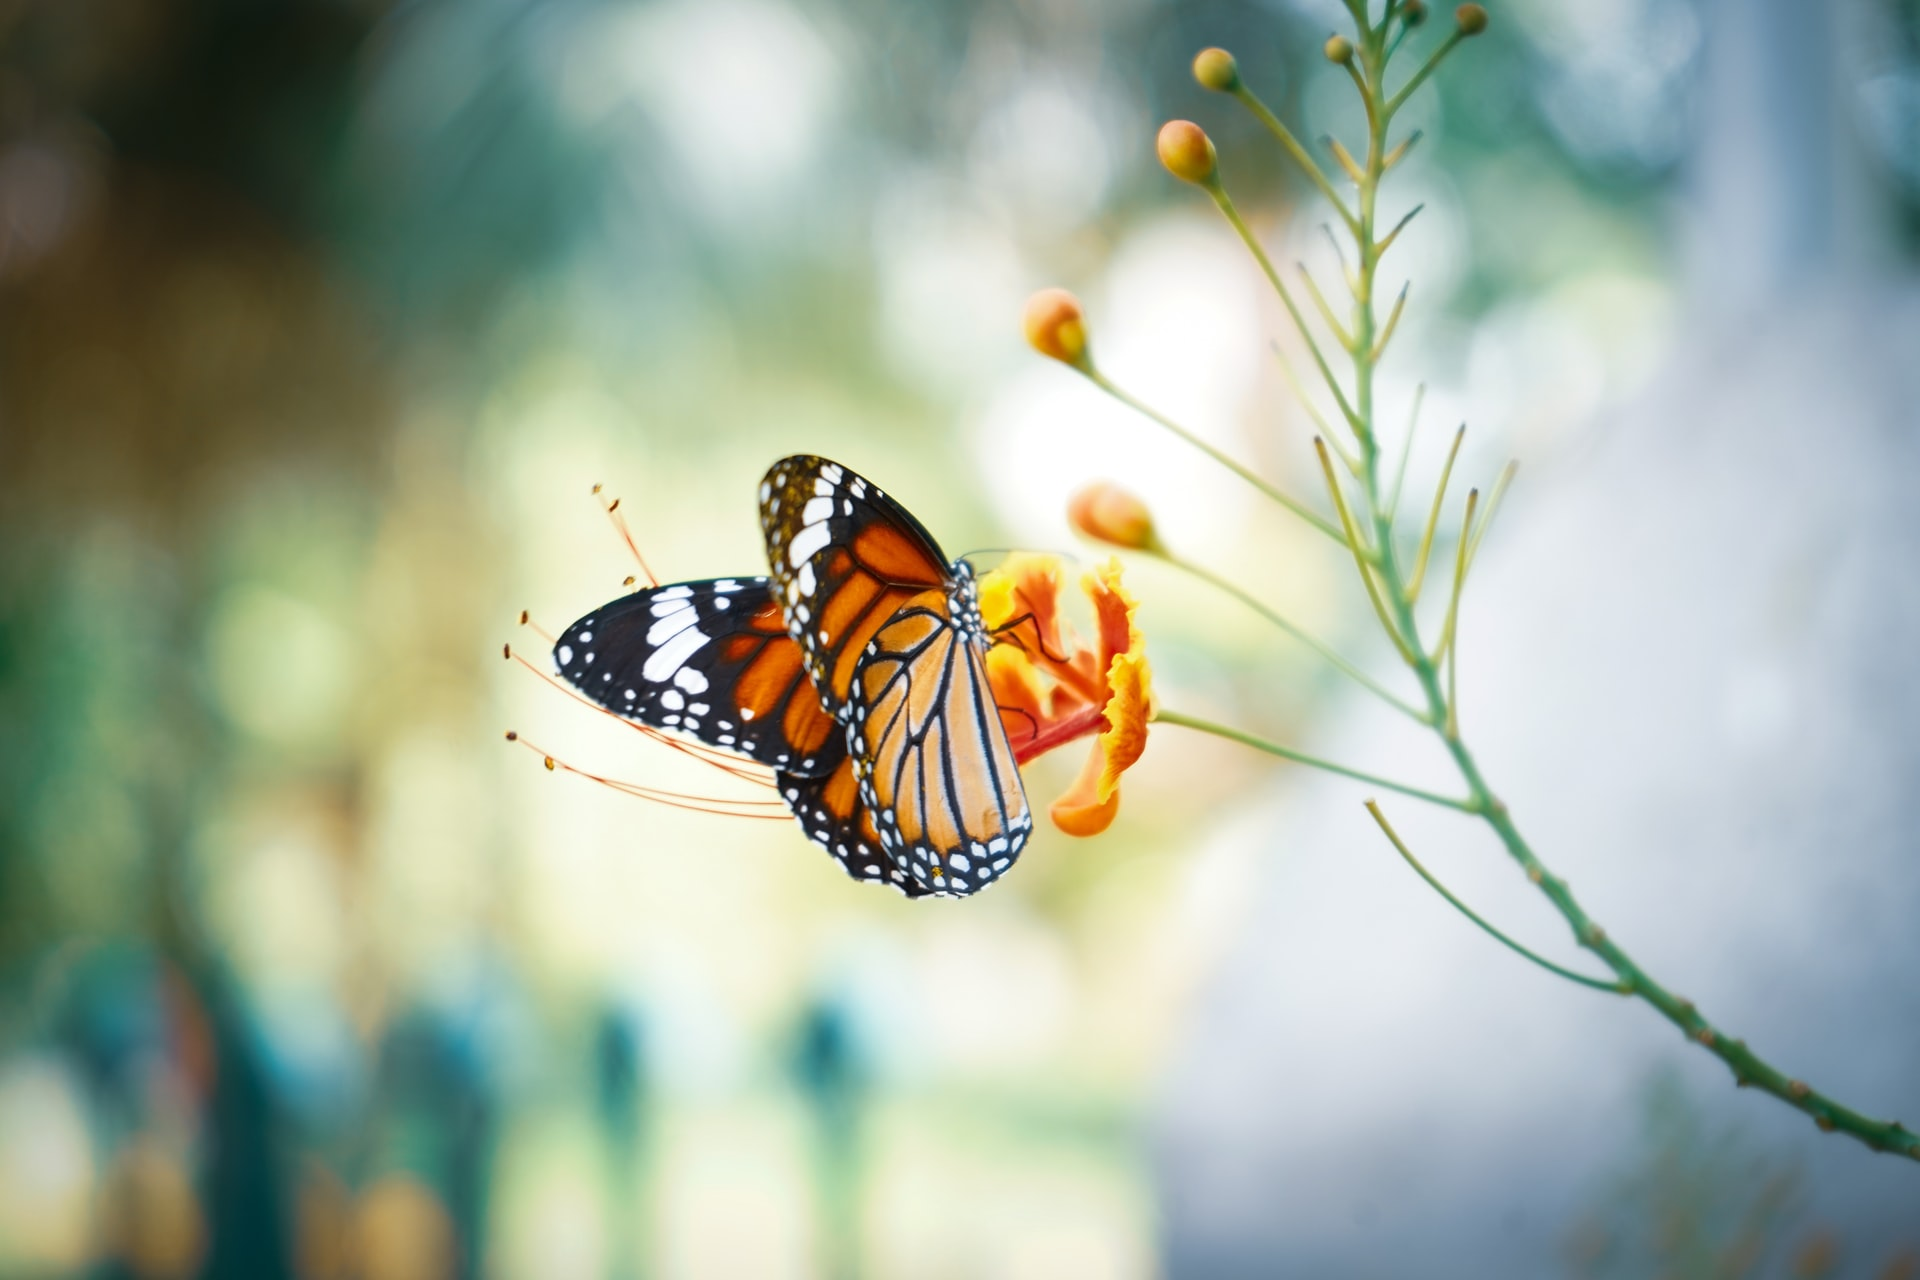 Butterfly World: Home to More Than 20,000 Fluttery Friends